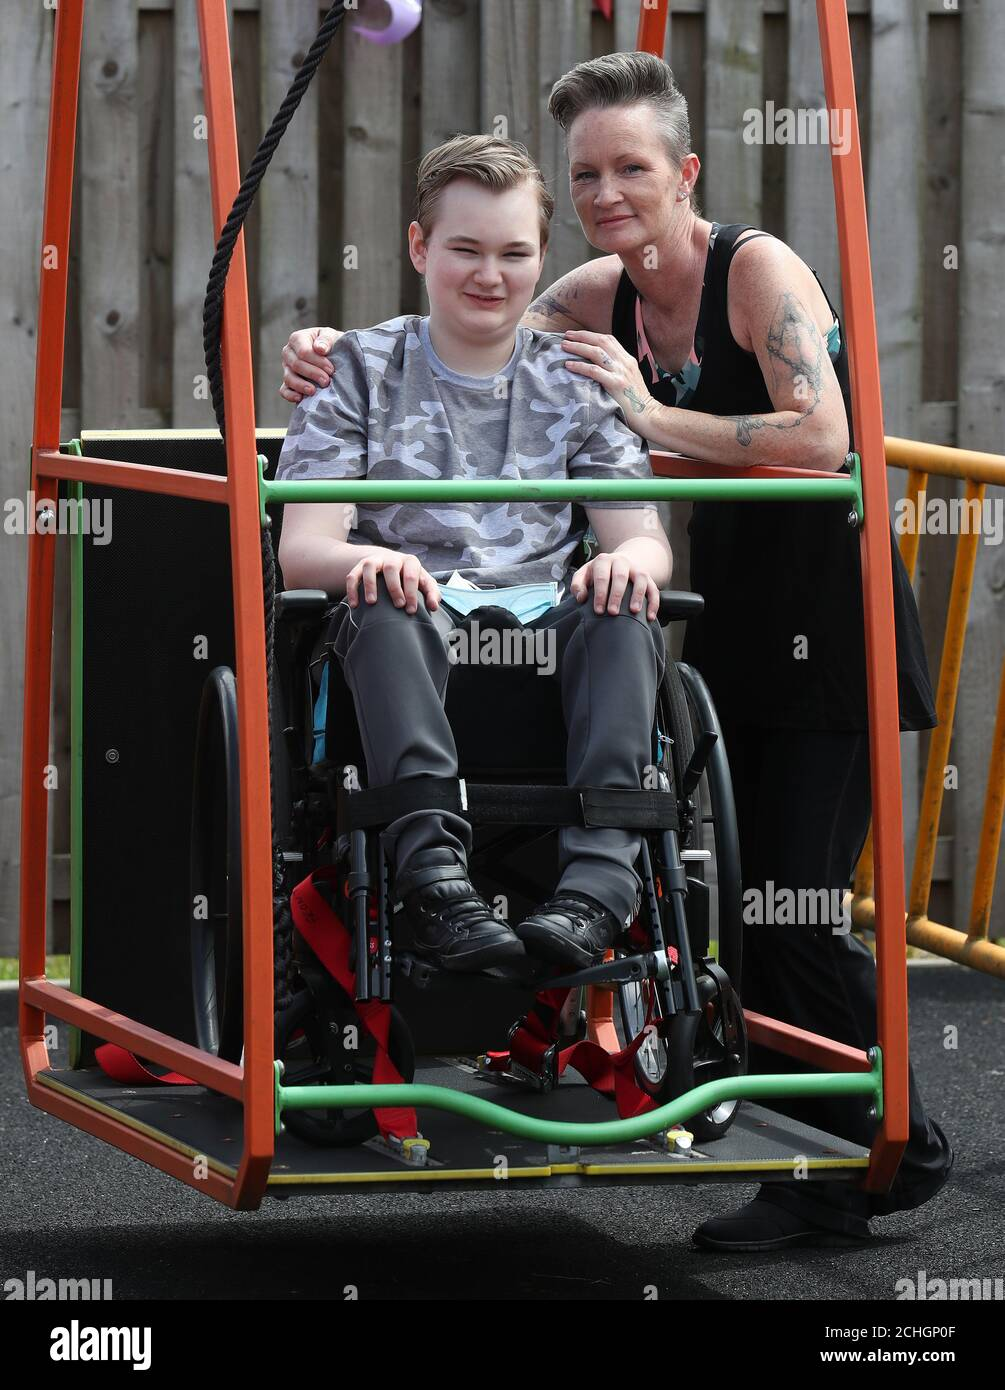 Embargoed to 0001 Monday June 22 Gregor Marshall alongside his mother Karen as Gregor having a ride on the wheelchair swing in the outside therapy area at the Craighalbert Centre. Coronavirus adaptations have been installed at the Scottish Centre for Children with Motor Impairments, Craighalbert Centre, Cumbernauld, as Scotland continues gradually lifting coronavirus lockdown measures. Stock Photo